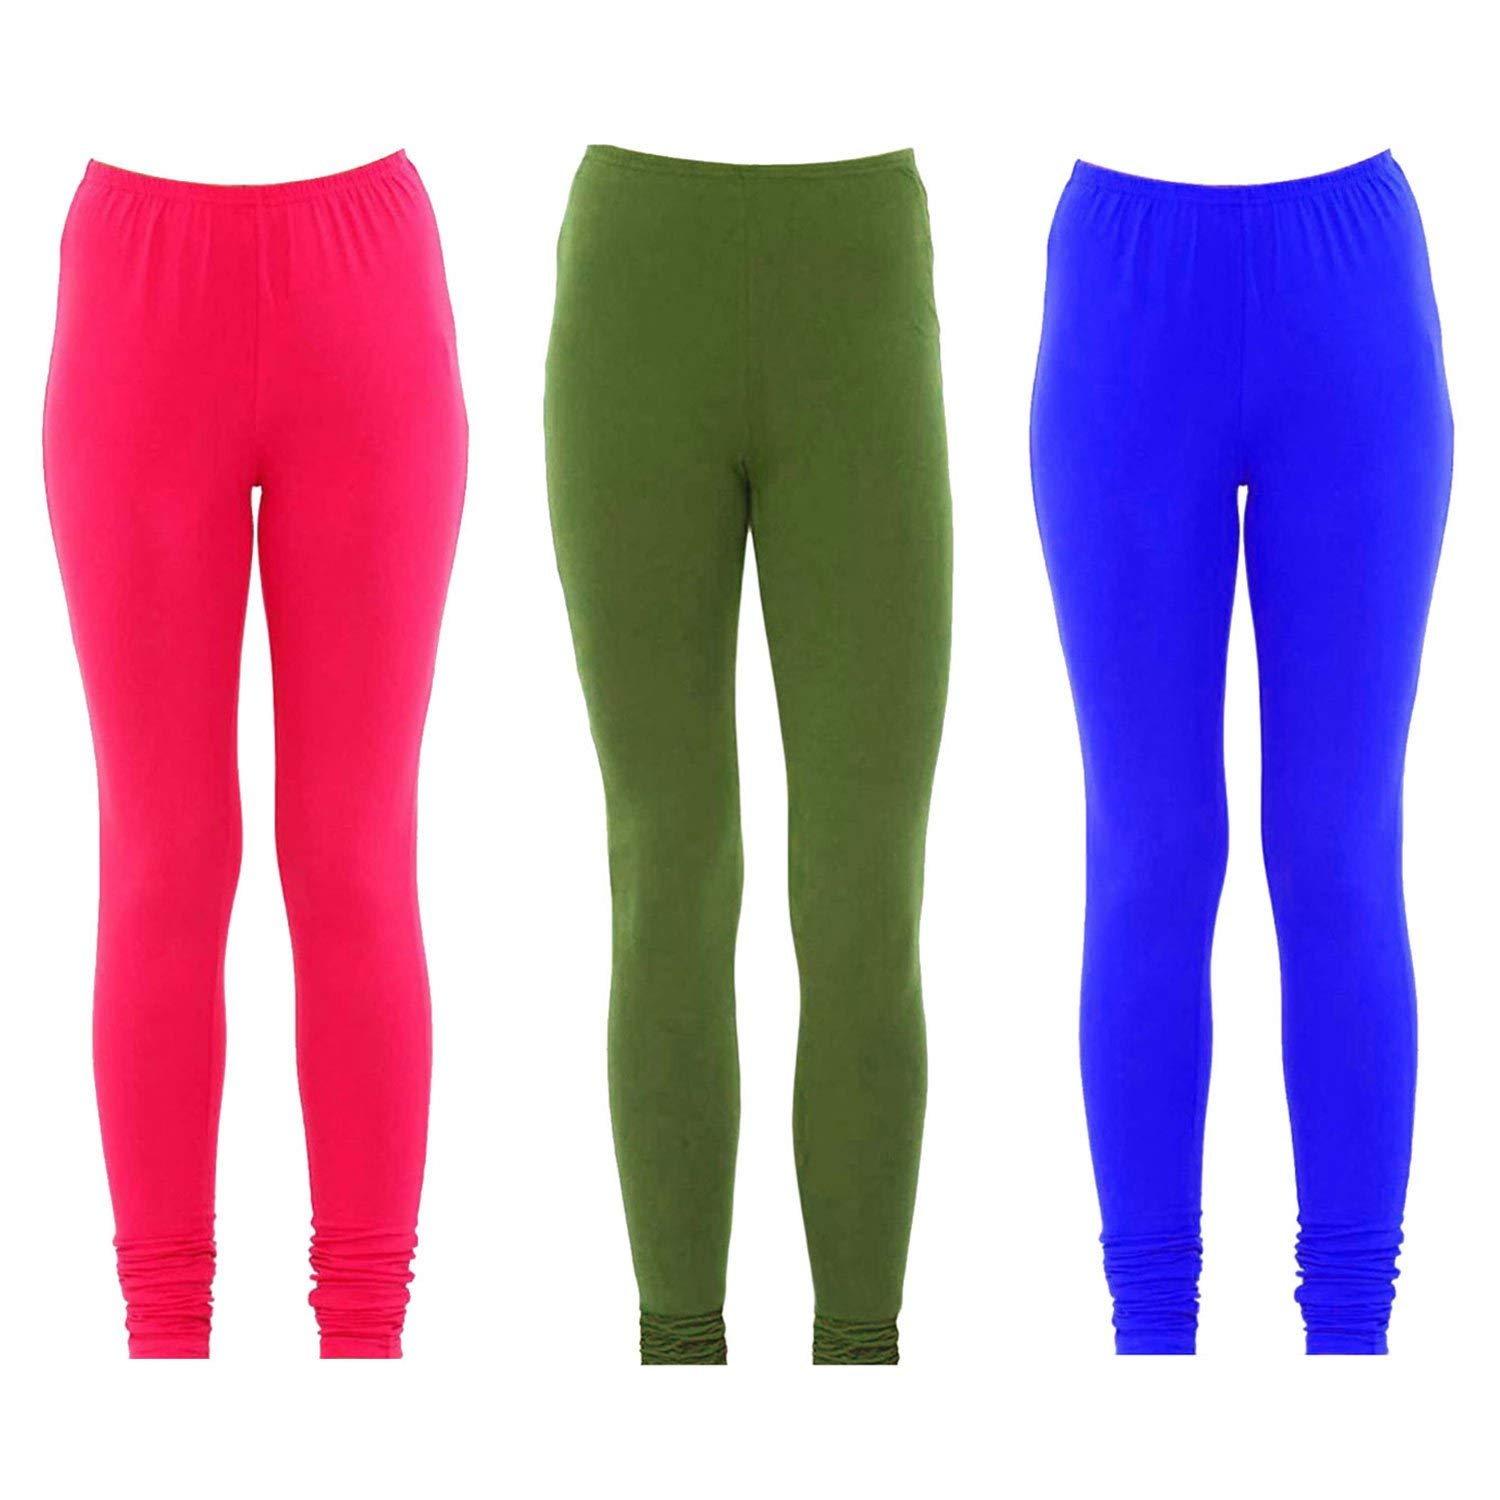 Set of 3 Pink, Green and Royal Blue Women's Solid Lycra Fabric Stretchable Workout Yoga Pants Designer Leggings